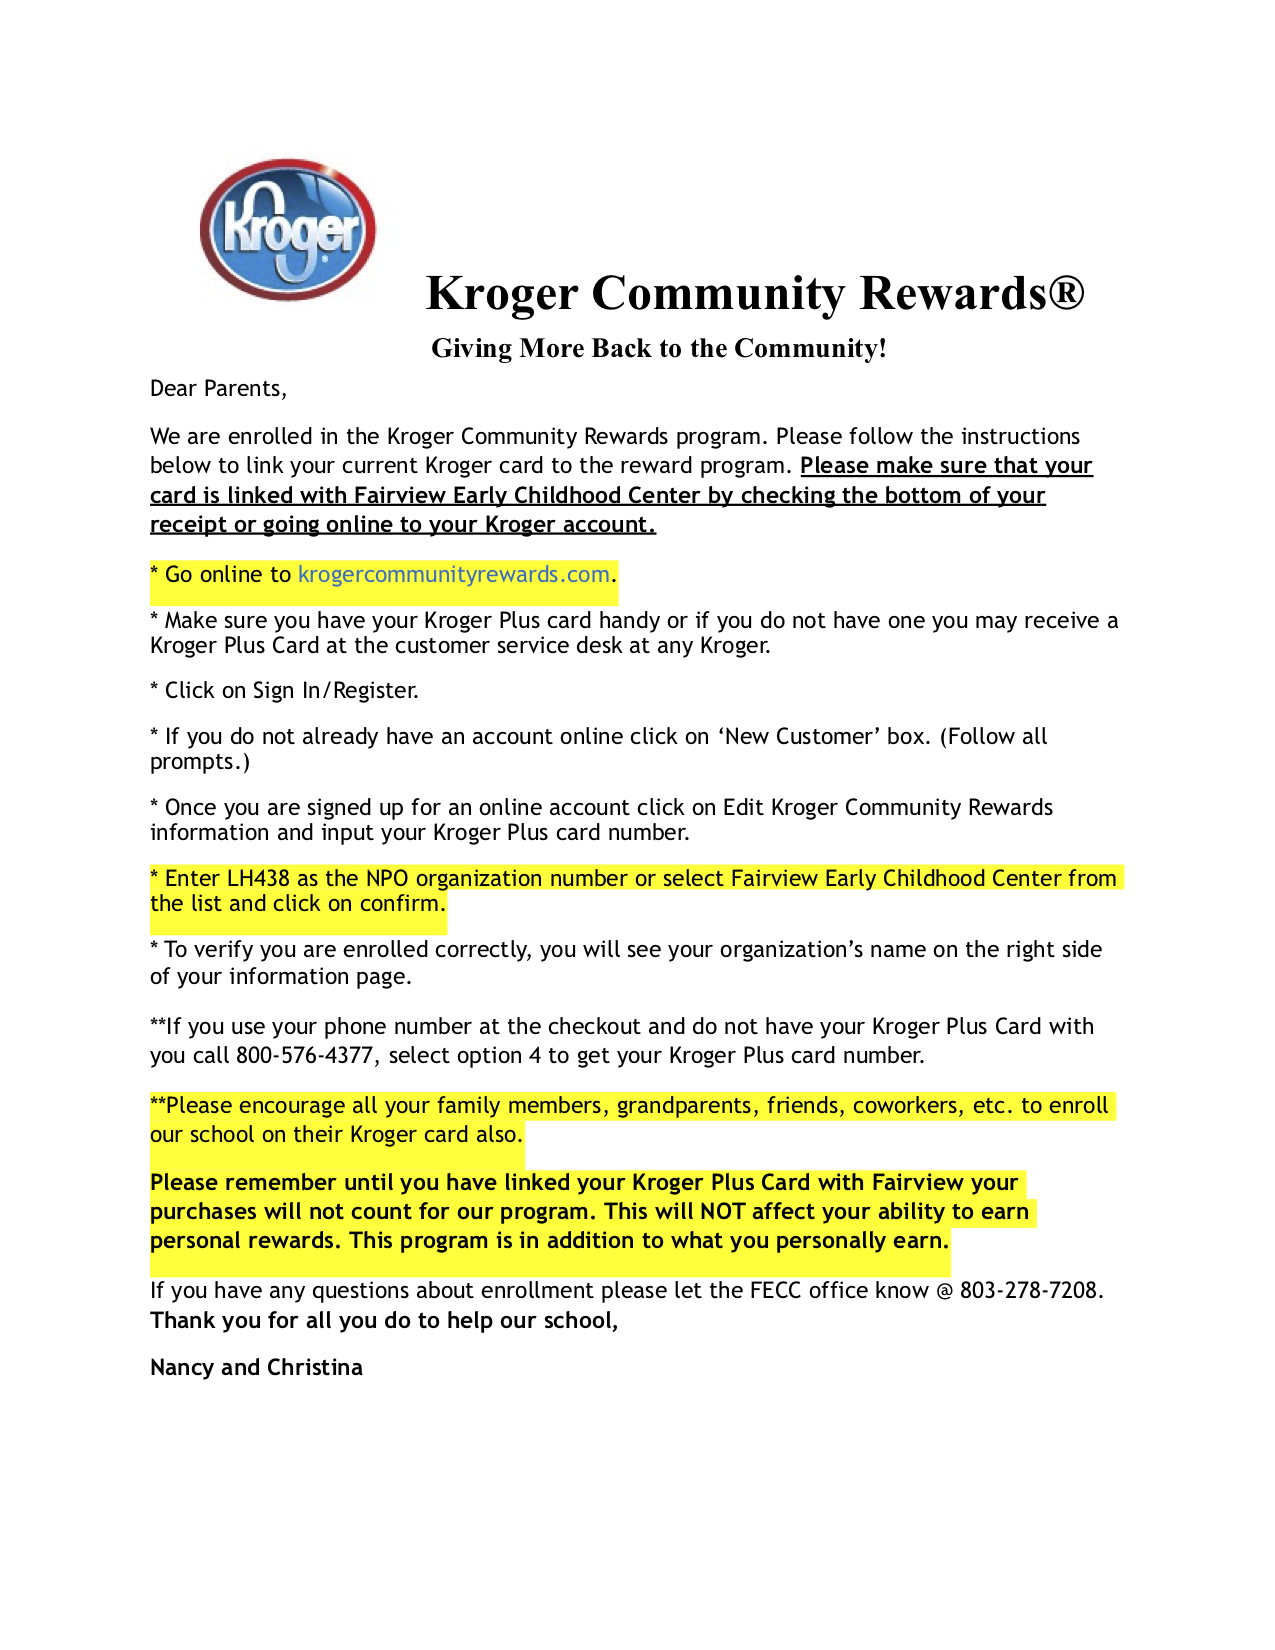 Kroger Community Rewards Parent Letter.png